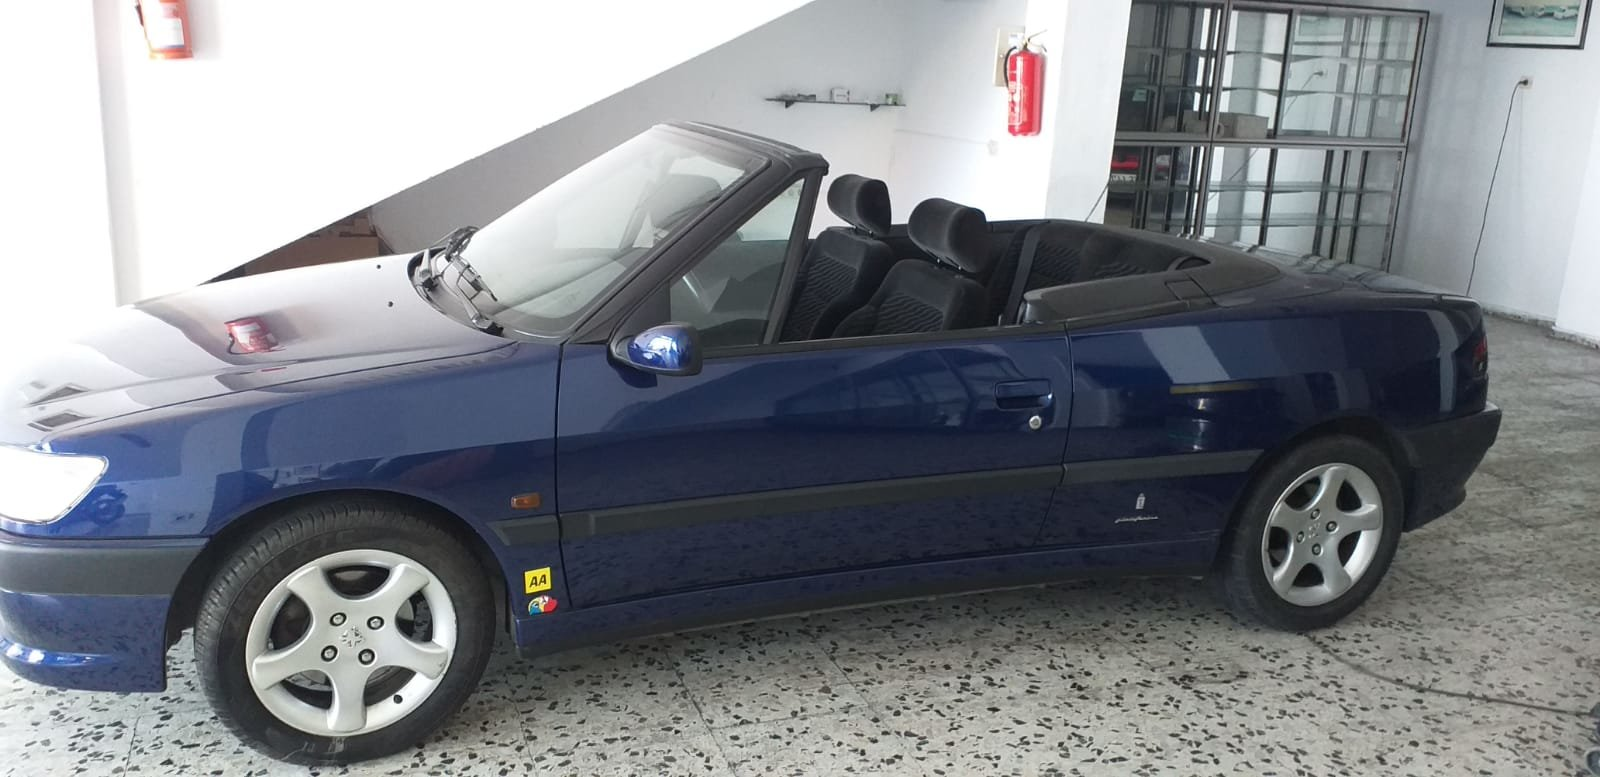 1998 PEUGEOT 306 CABRIOLET LHD For Sale (picture 1 of 2)